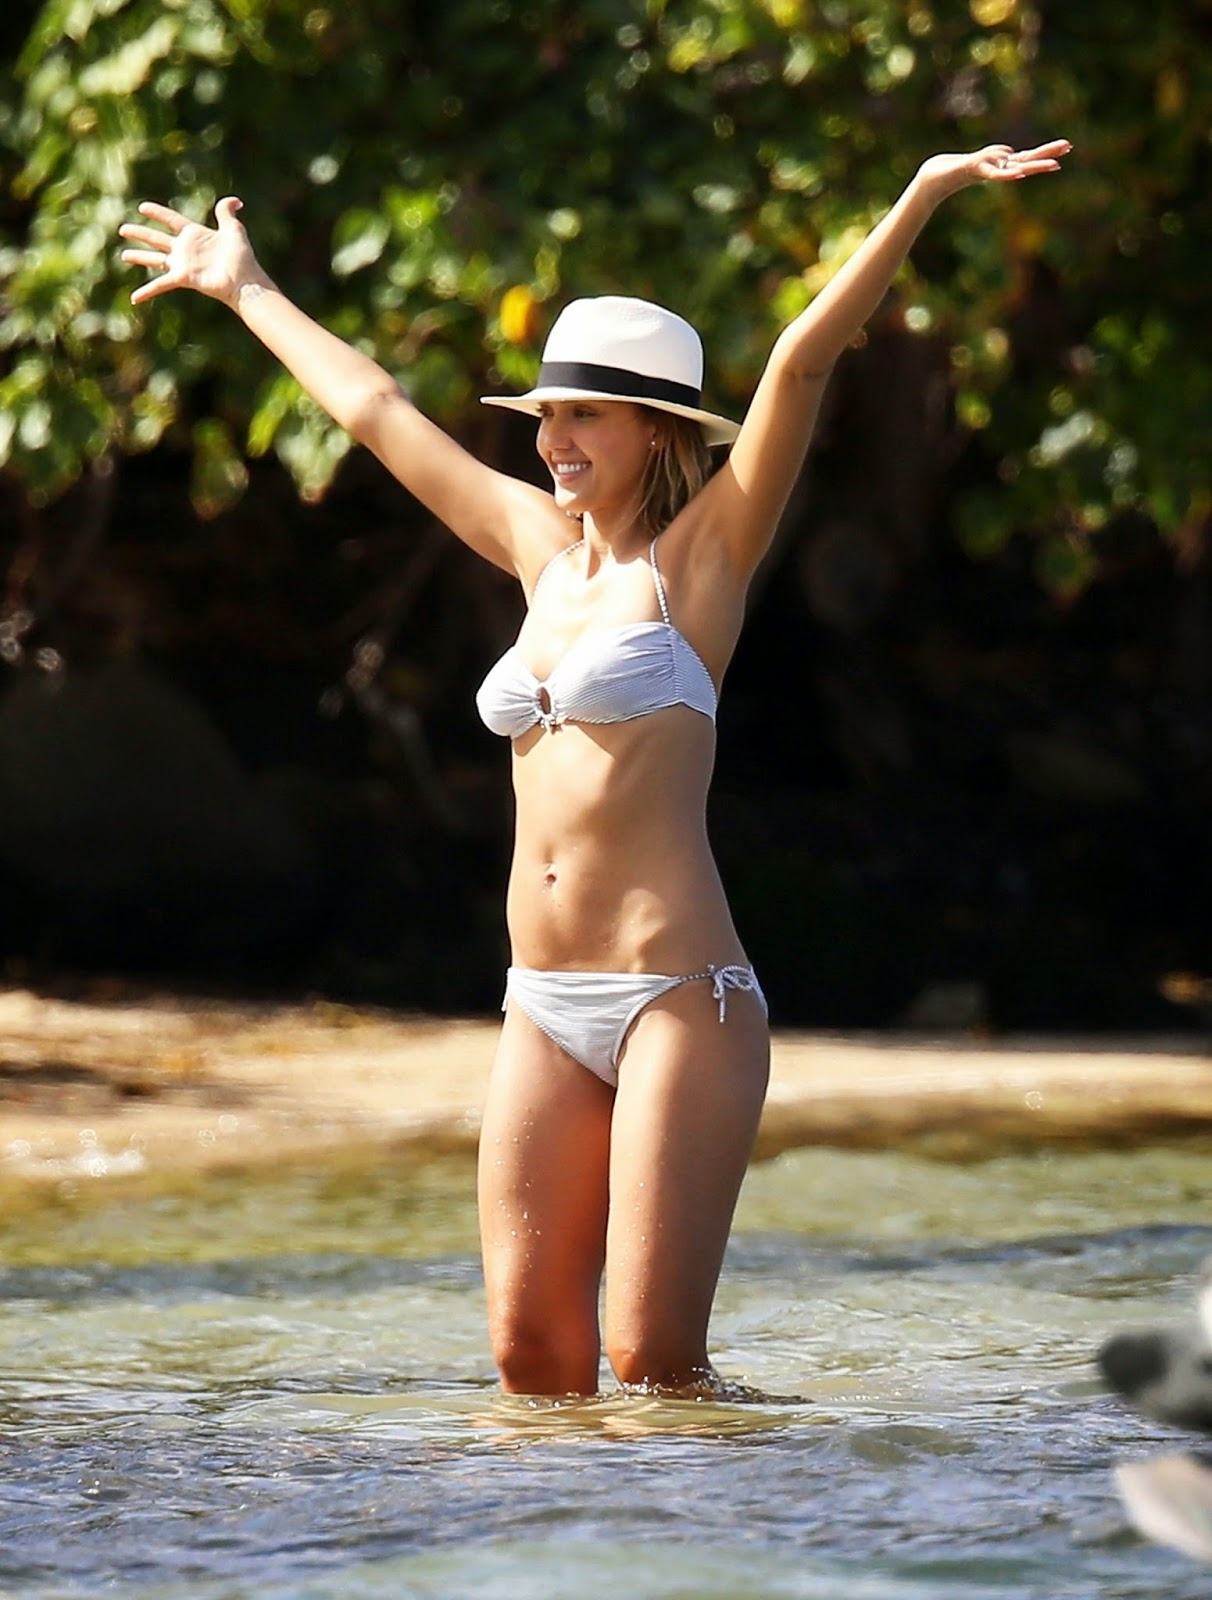 Jessica Alba Pose at the Beach